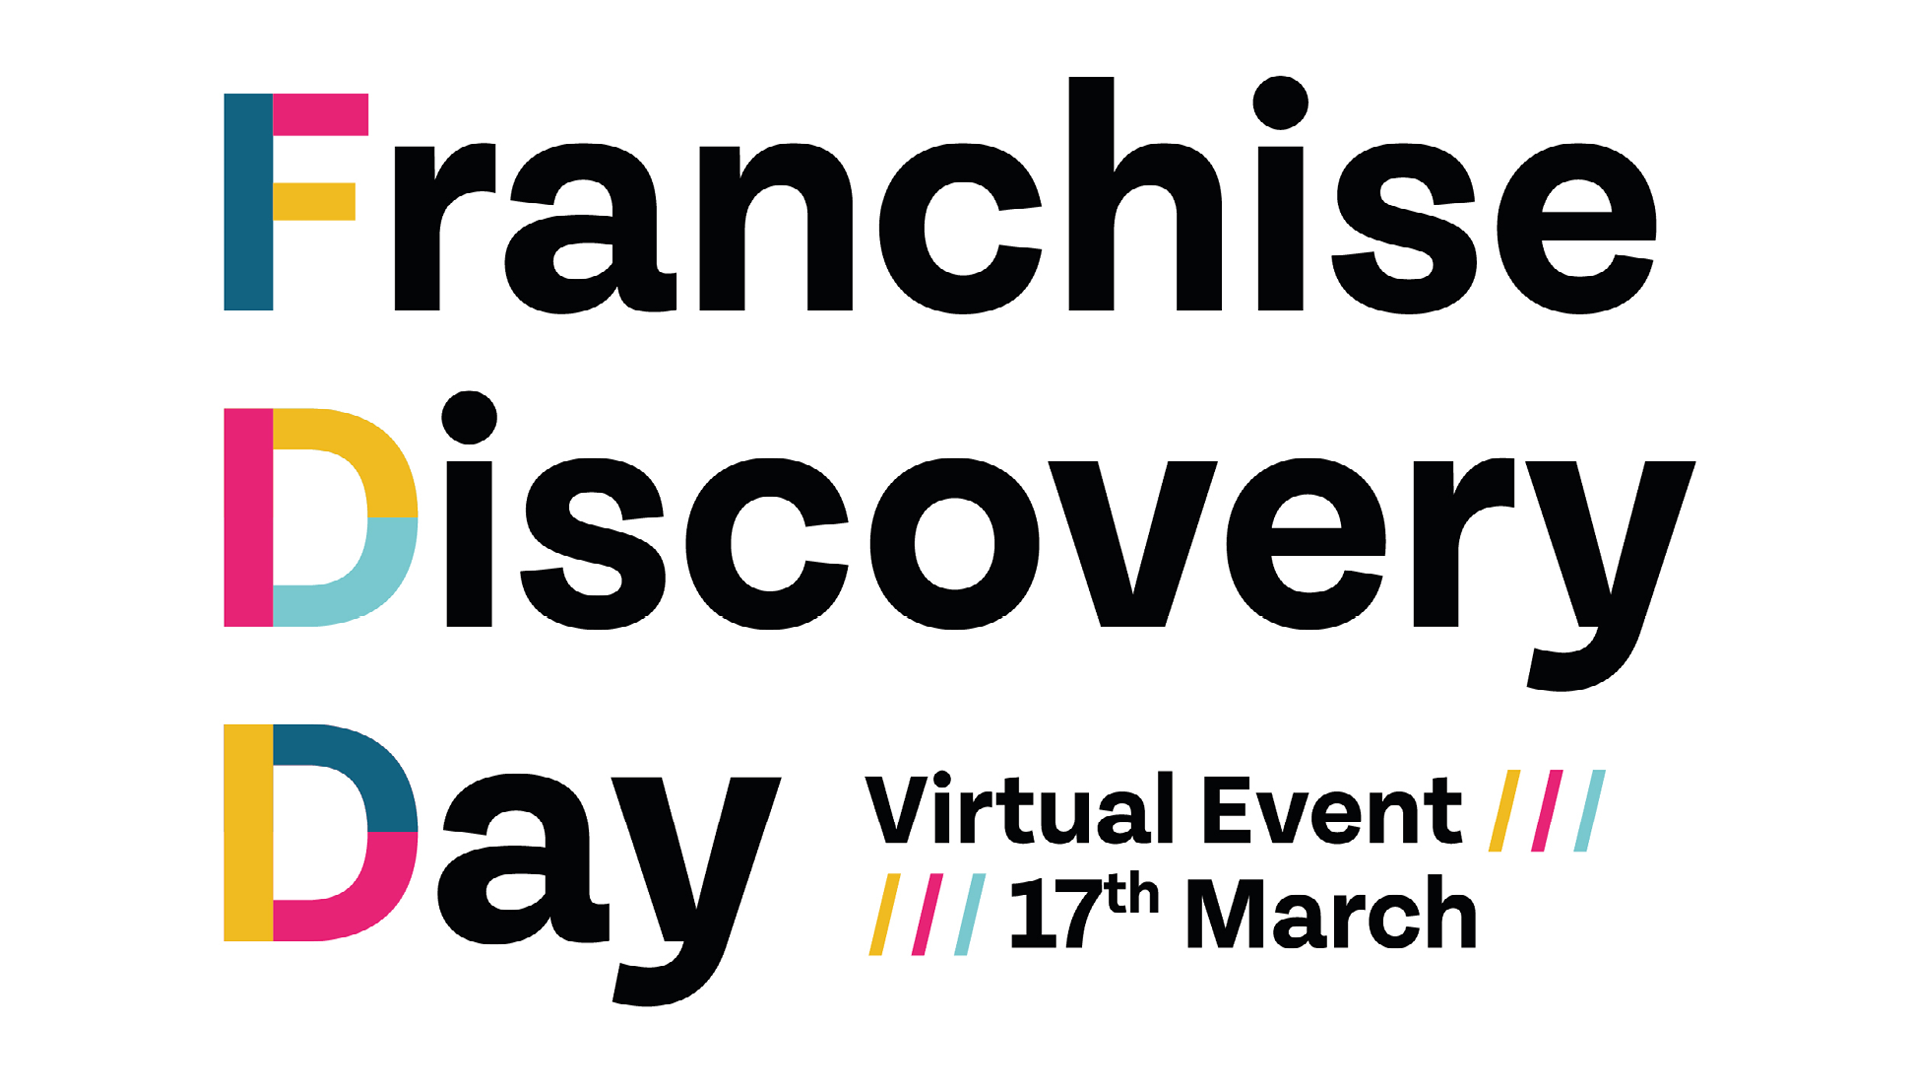 Partnership of franchisors come together for joint virtual Discovery Day.